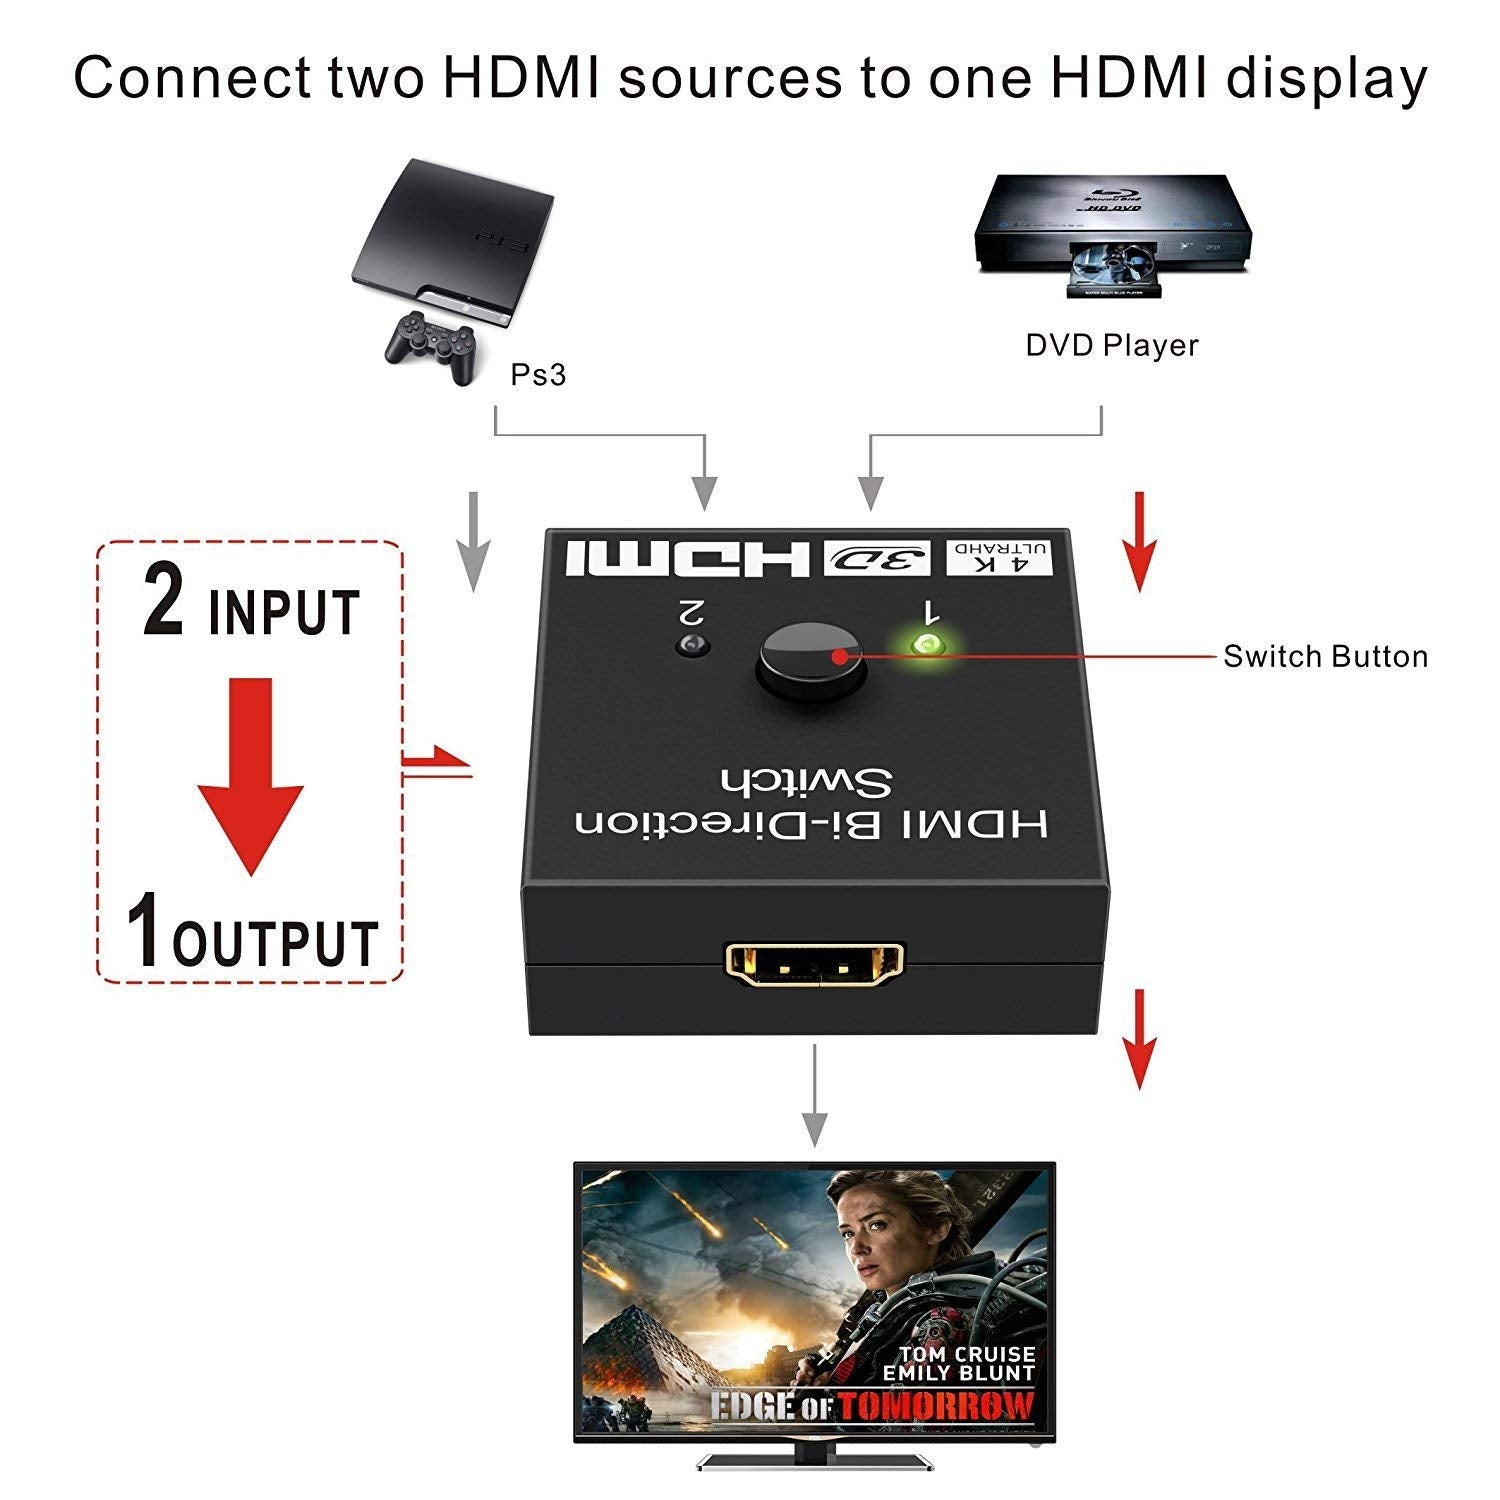 HDMI Splitter, GANA HDMI Switch Bidirectional 2 Input to 1